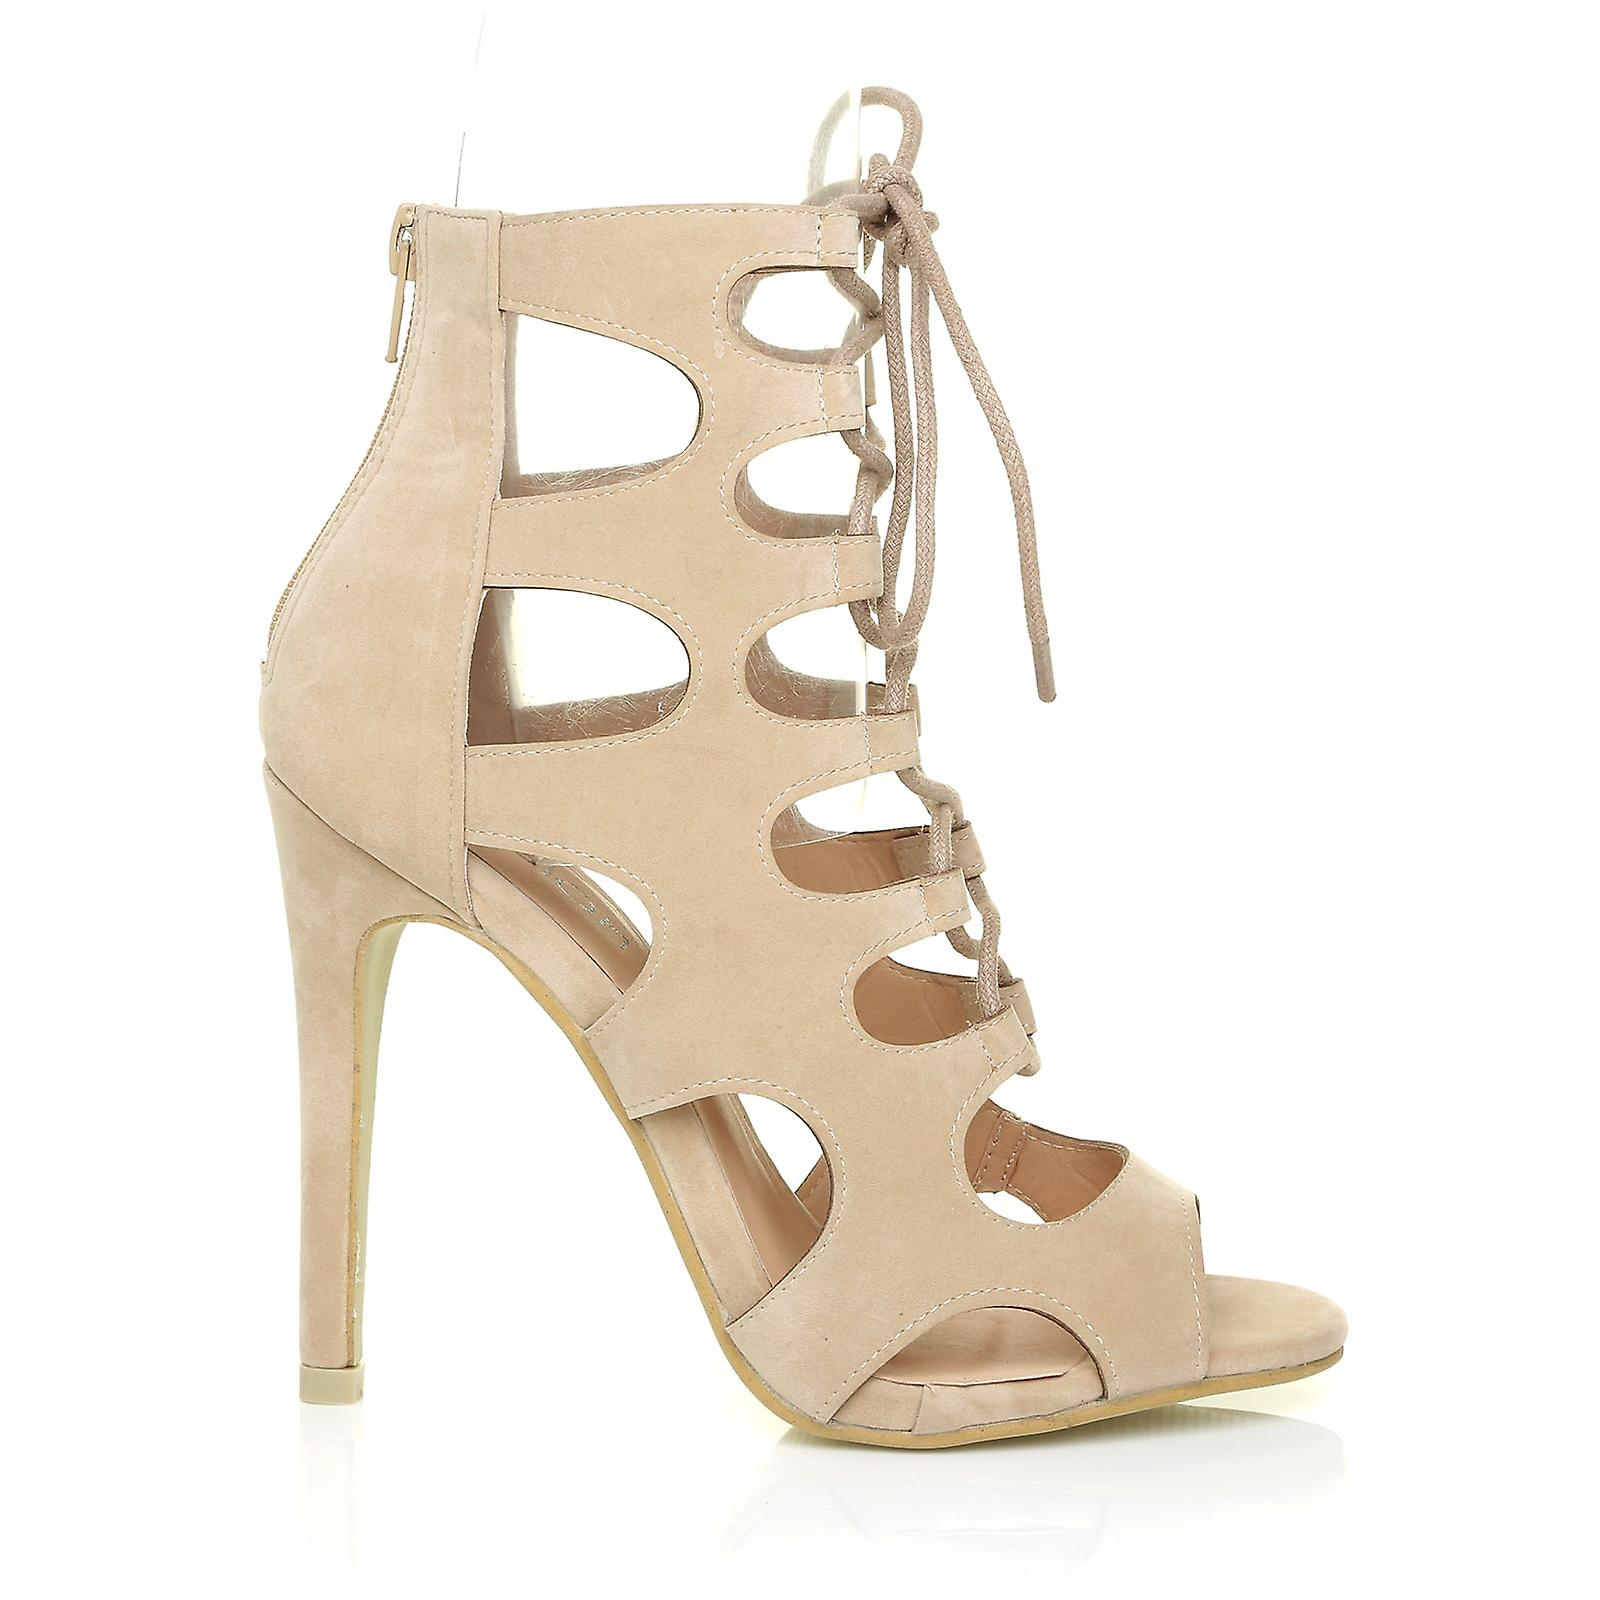 Sandals Gladiator Toe Suede Peep High Out Up Cut Lace Caged IVY Nude Heel 7qZwa